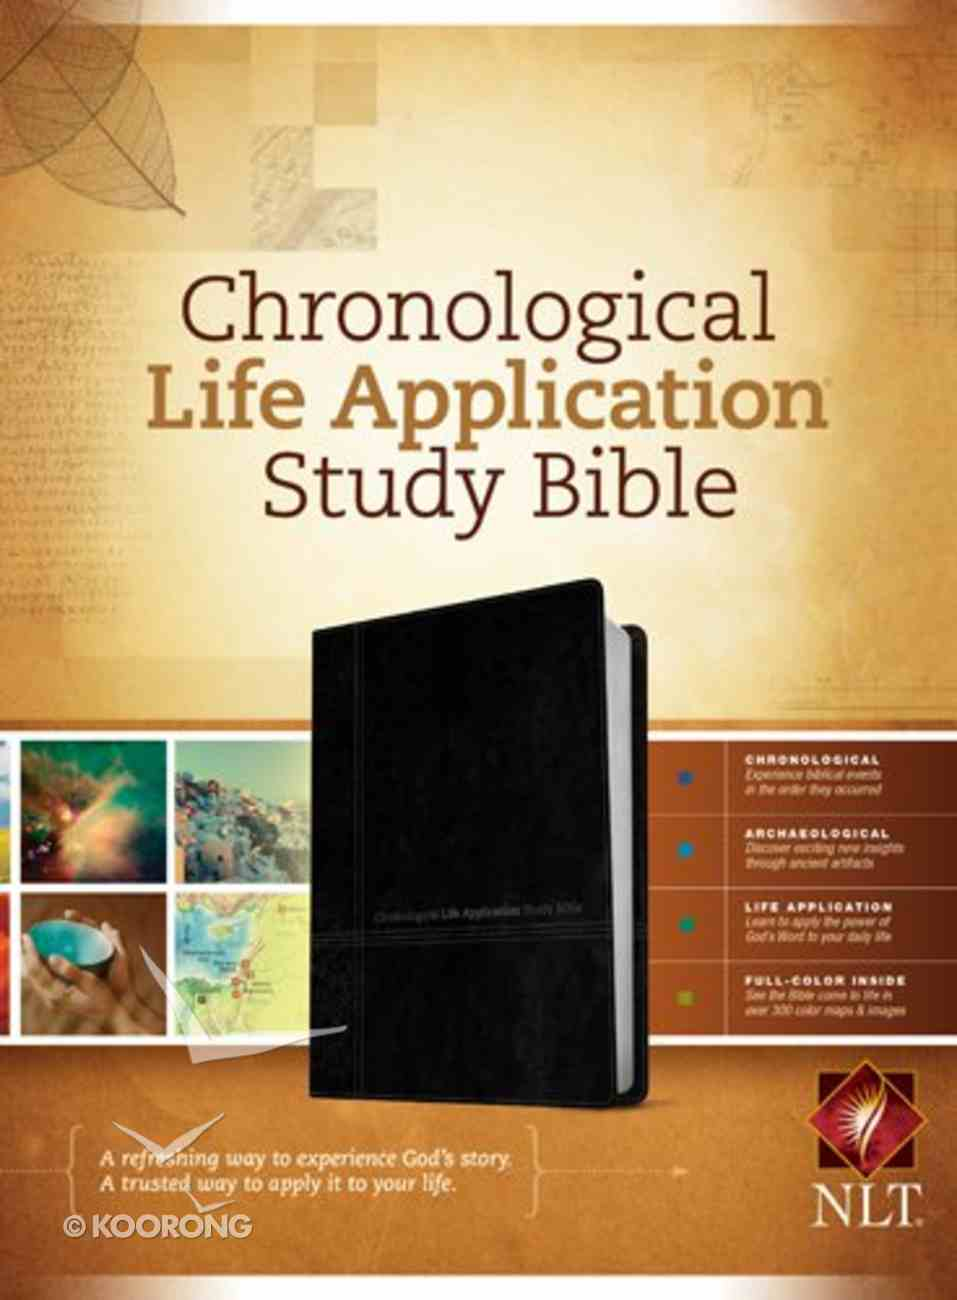 NLT Chronological Life Application Study Bible Black/Onyx (Black Letter Edition) Imitation Leather